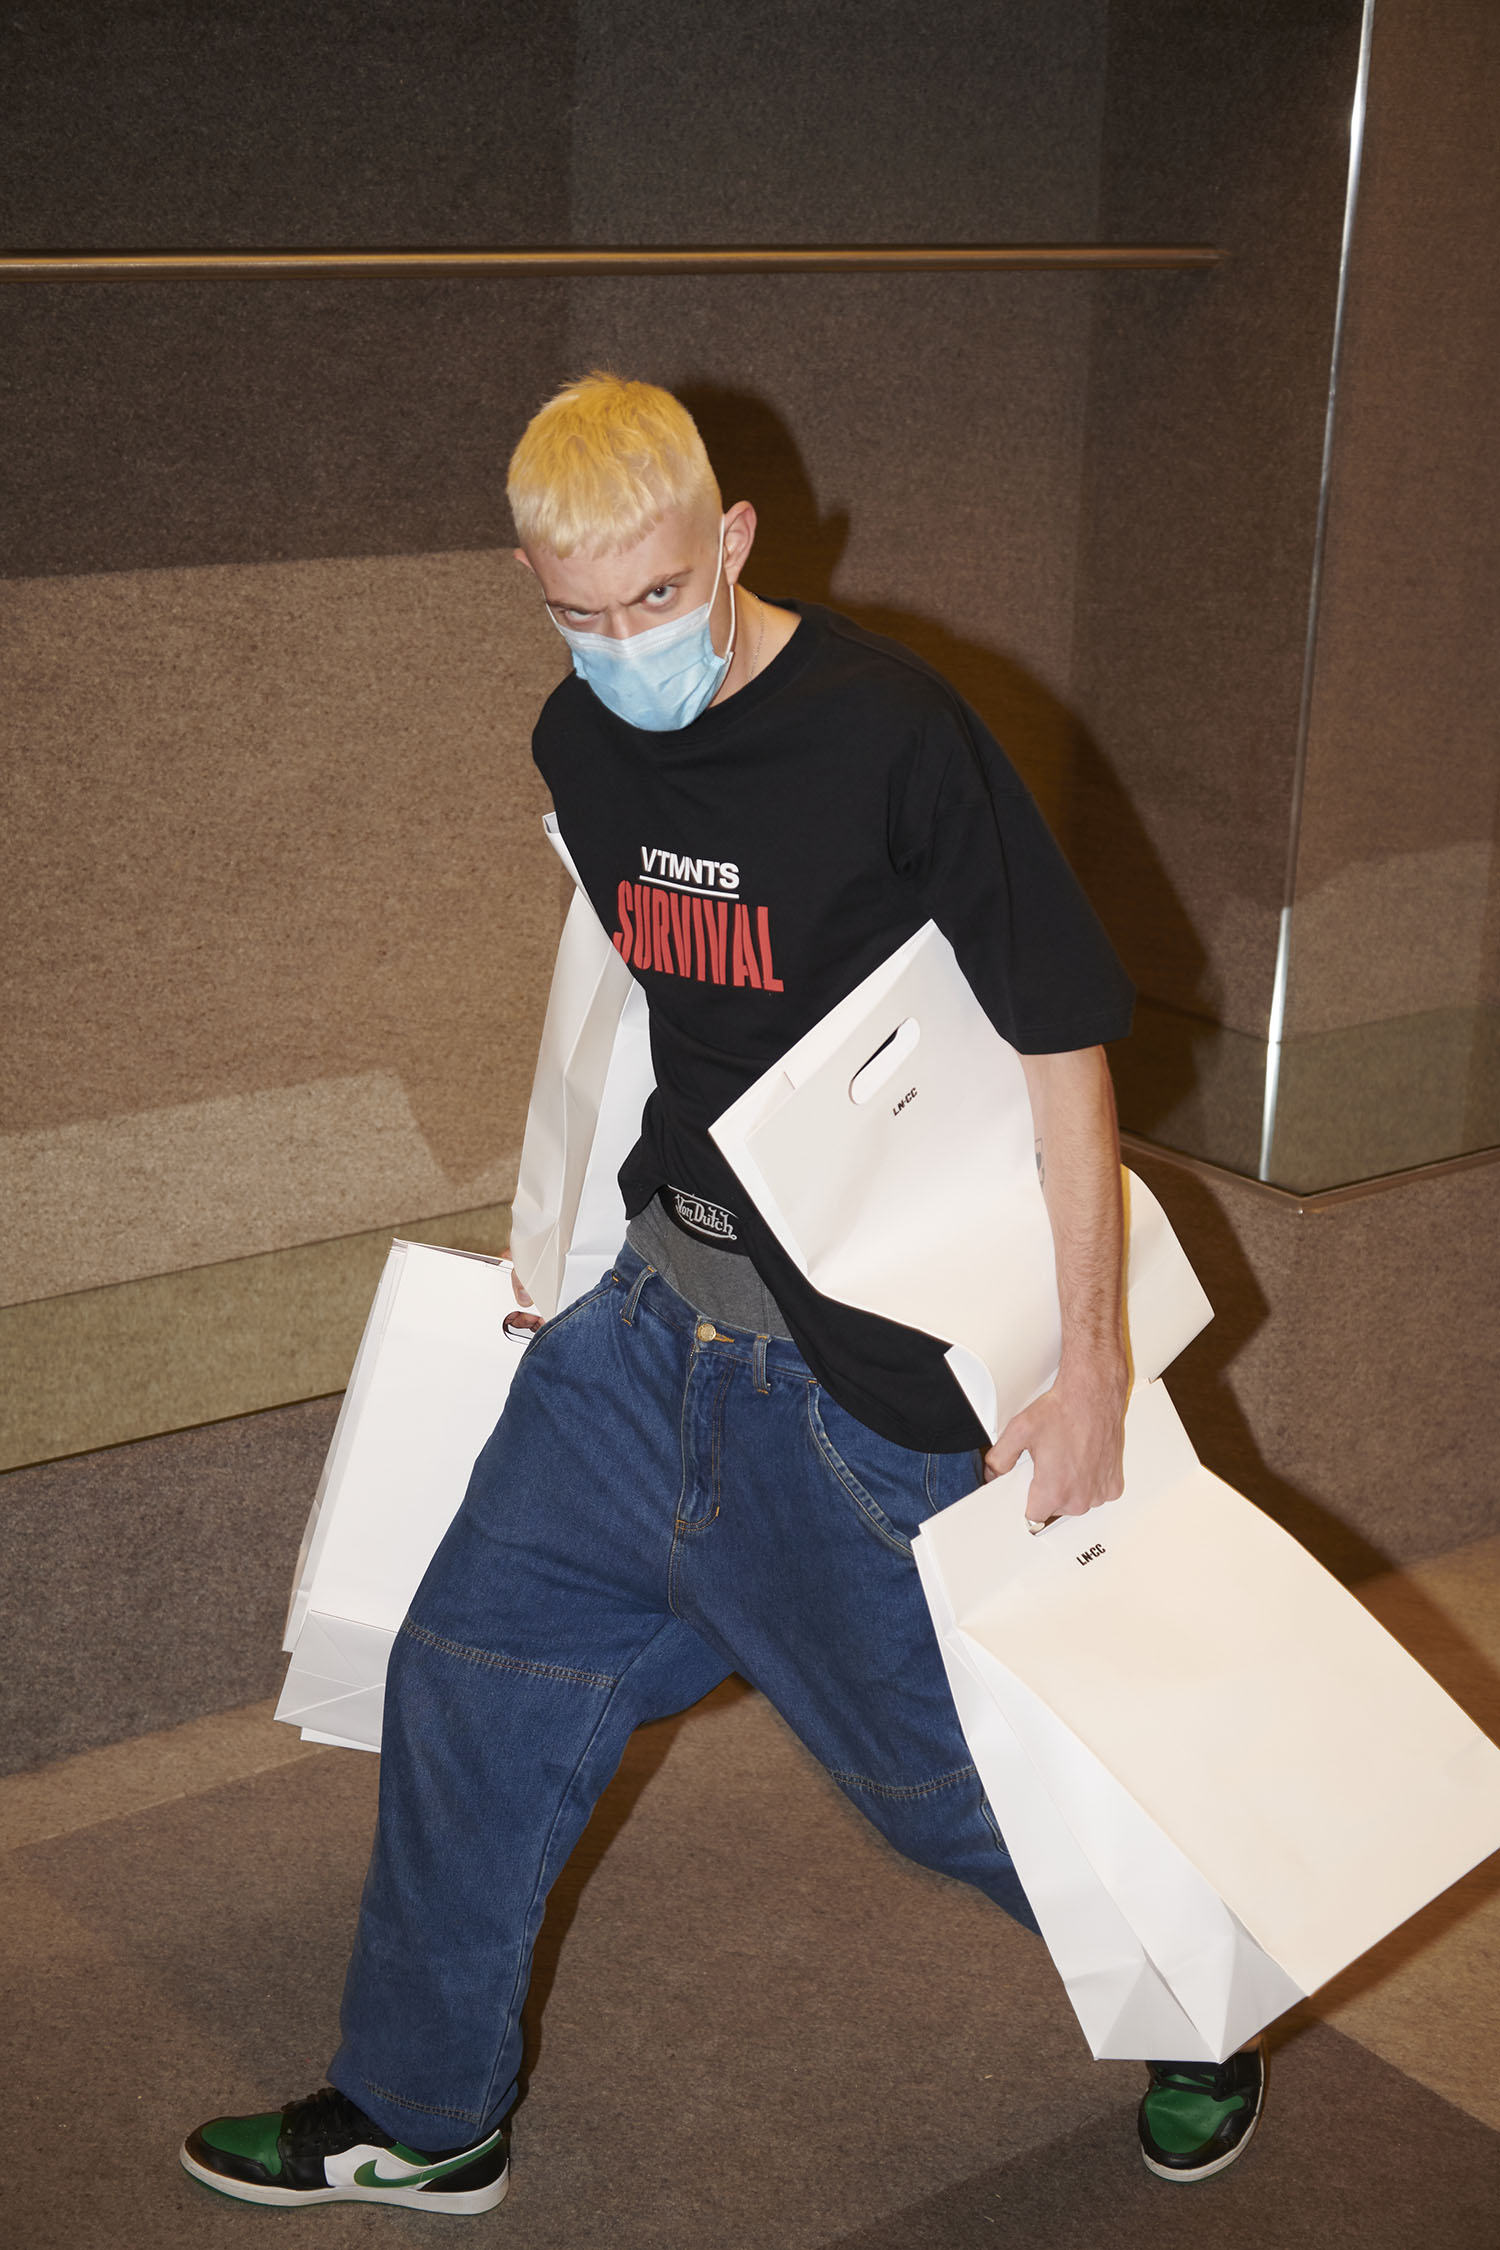 Vetements 'Survival' T-shirt for LN-CC 10th Anniversary 10.10 project.